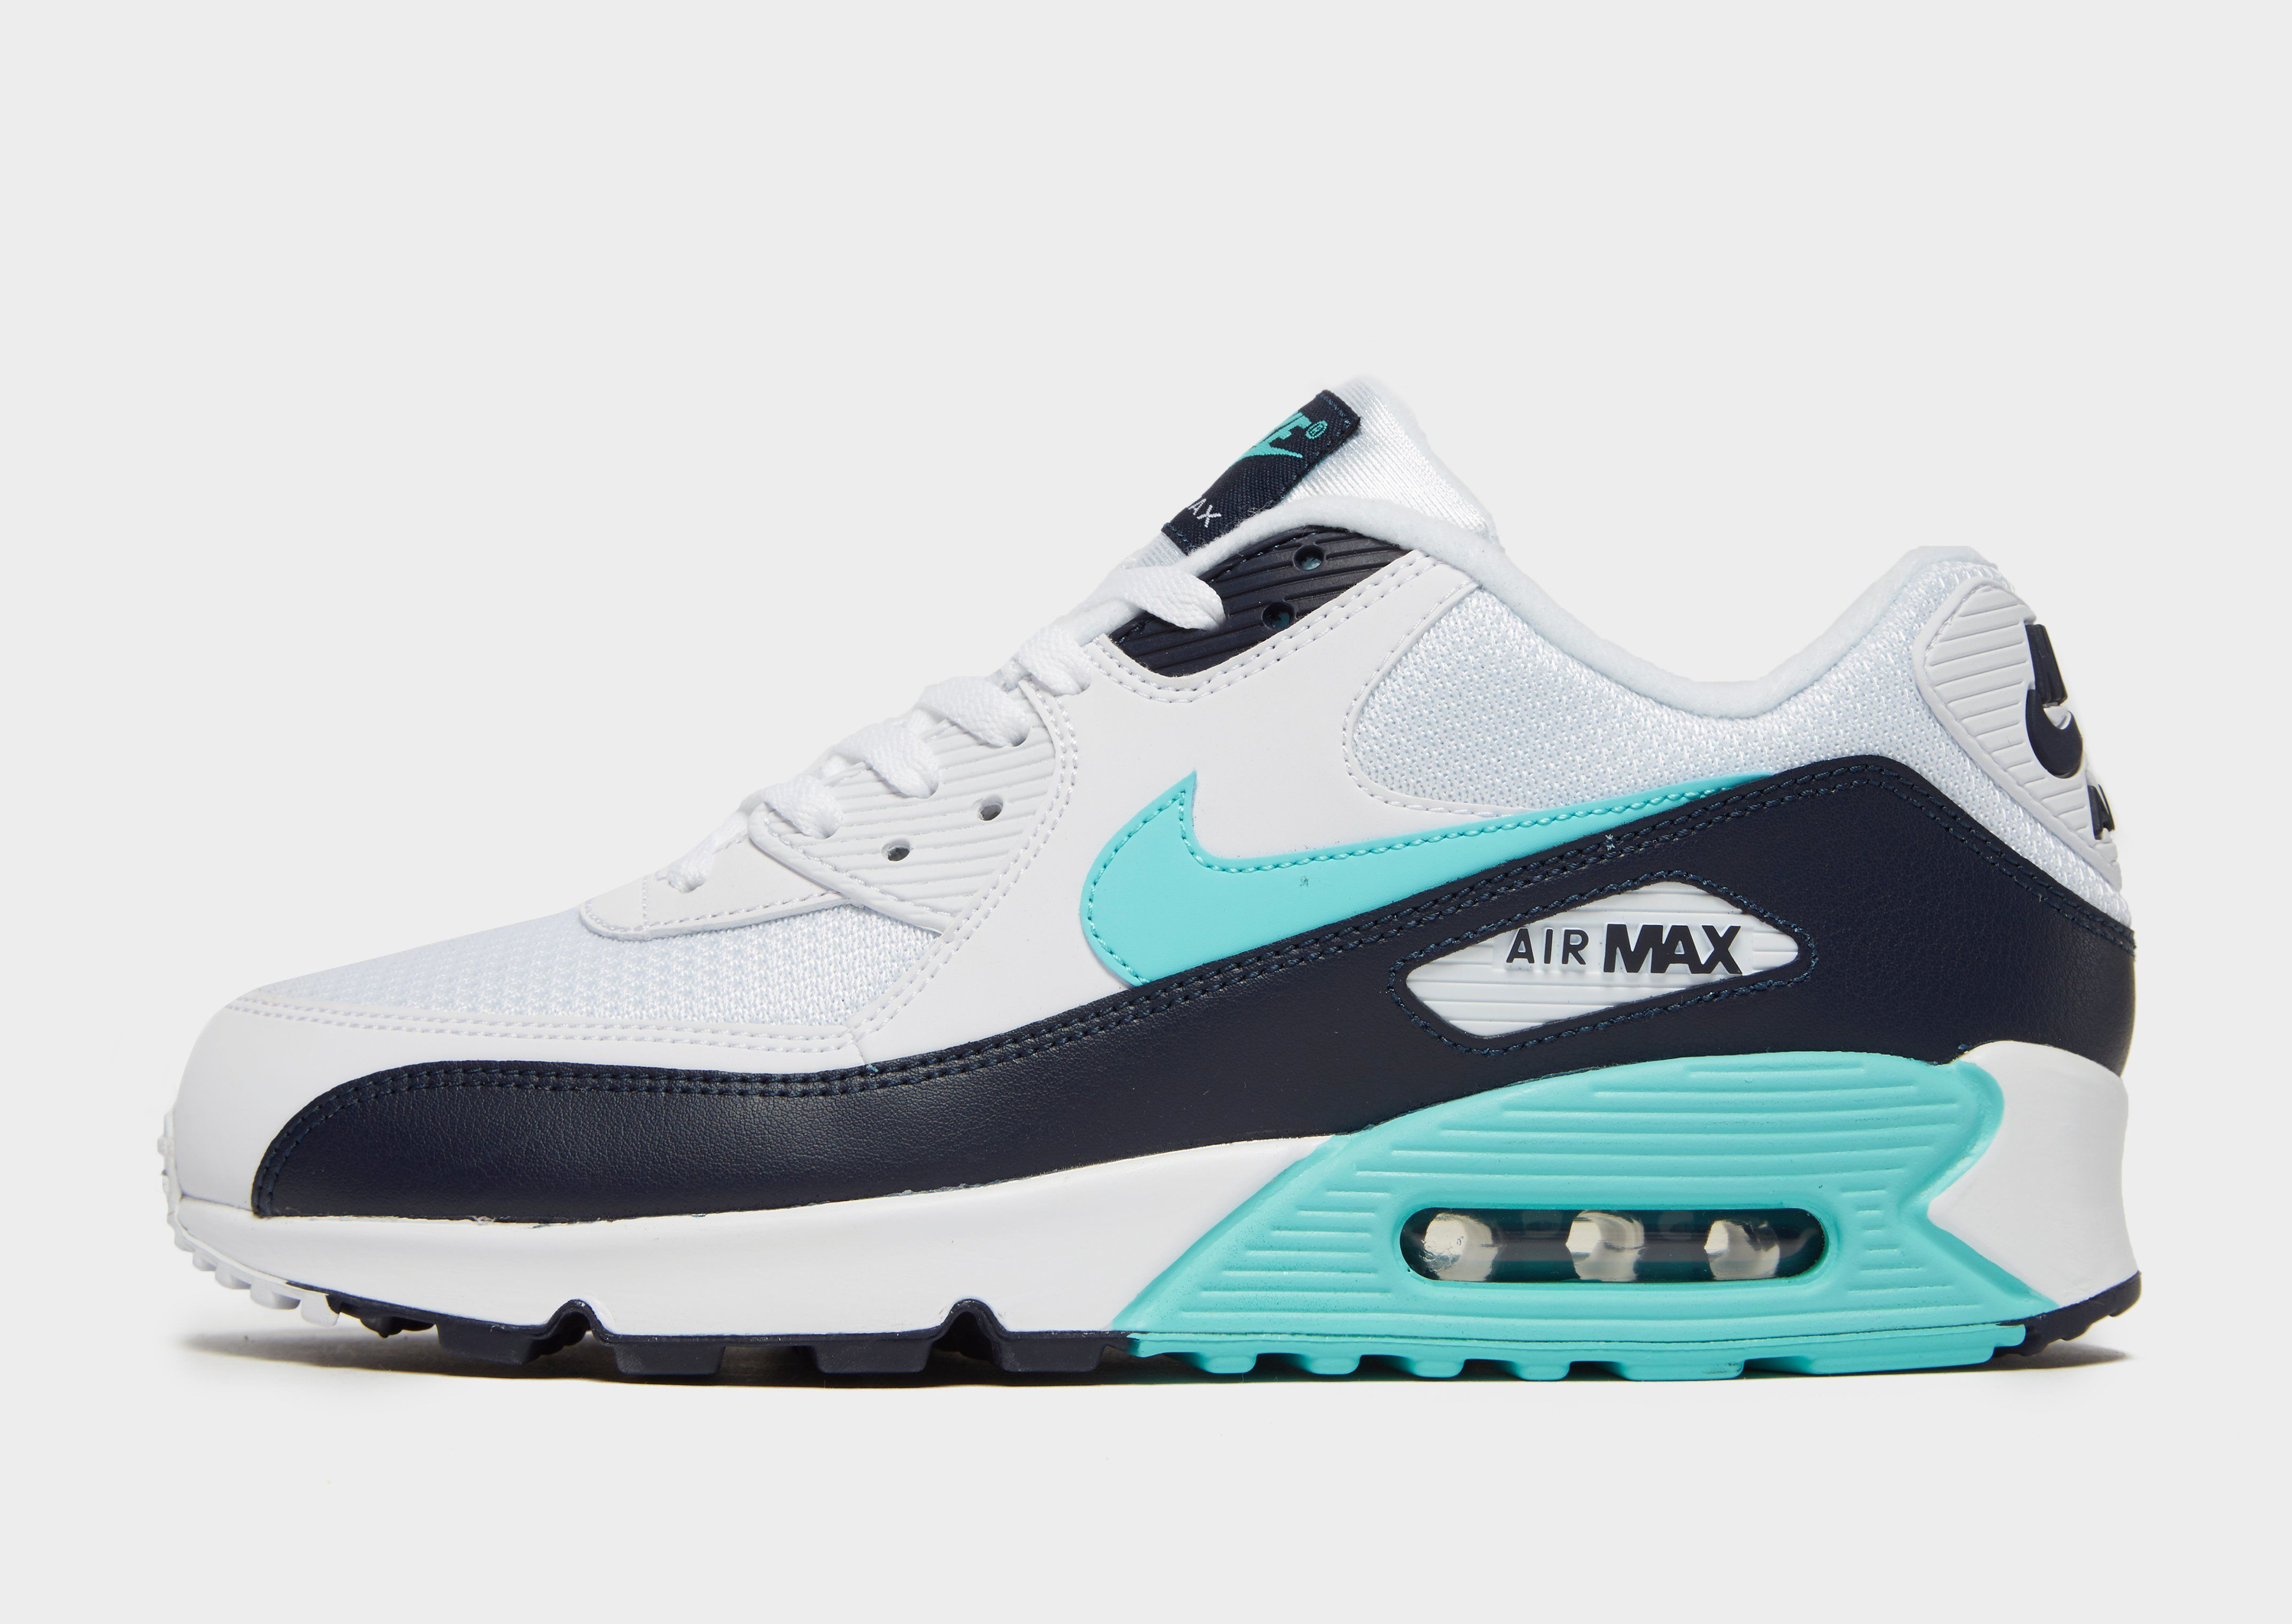 new product 22552 15e35 Nike Air Max 90 Essential OG   JD Sports Ireland